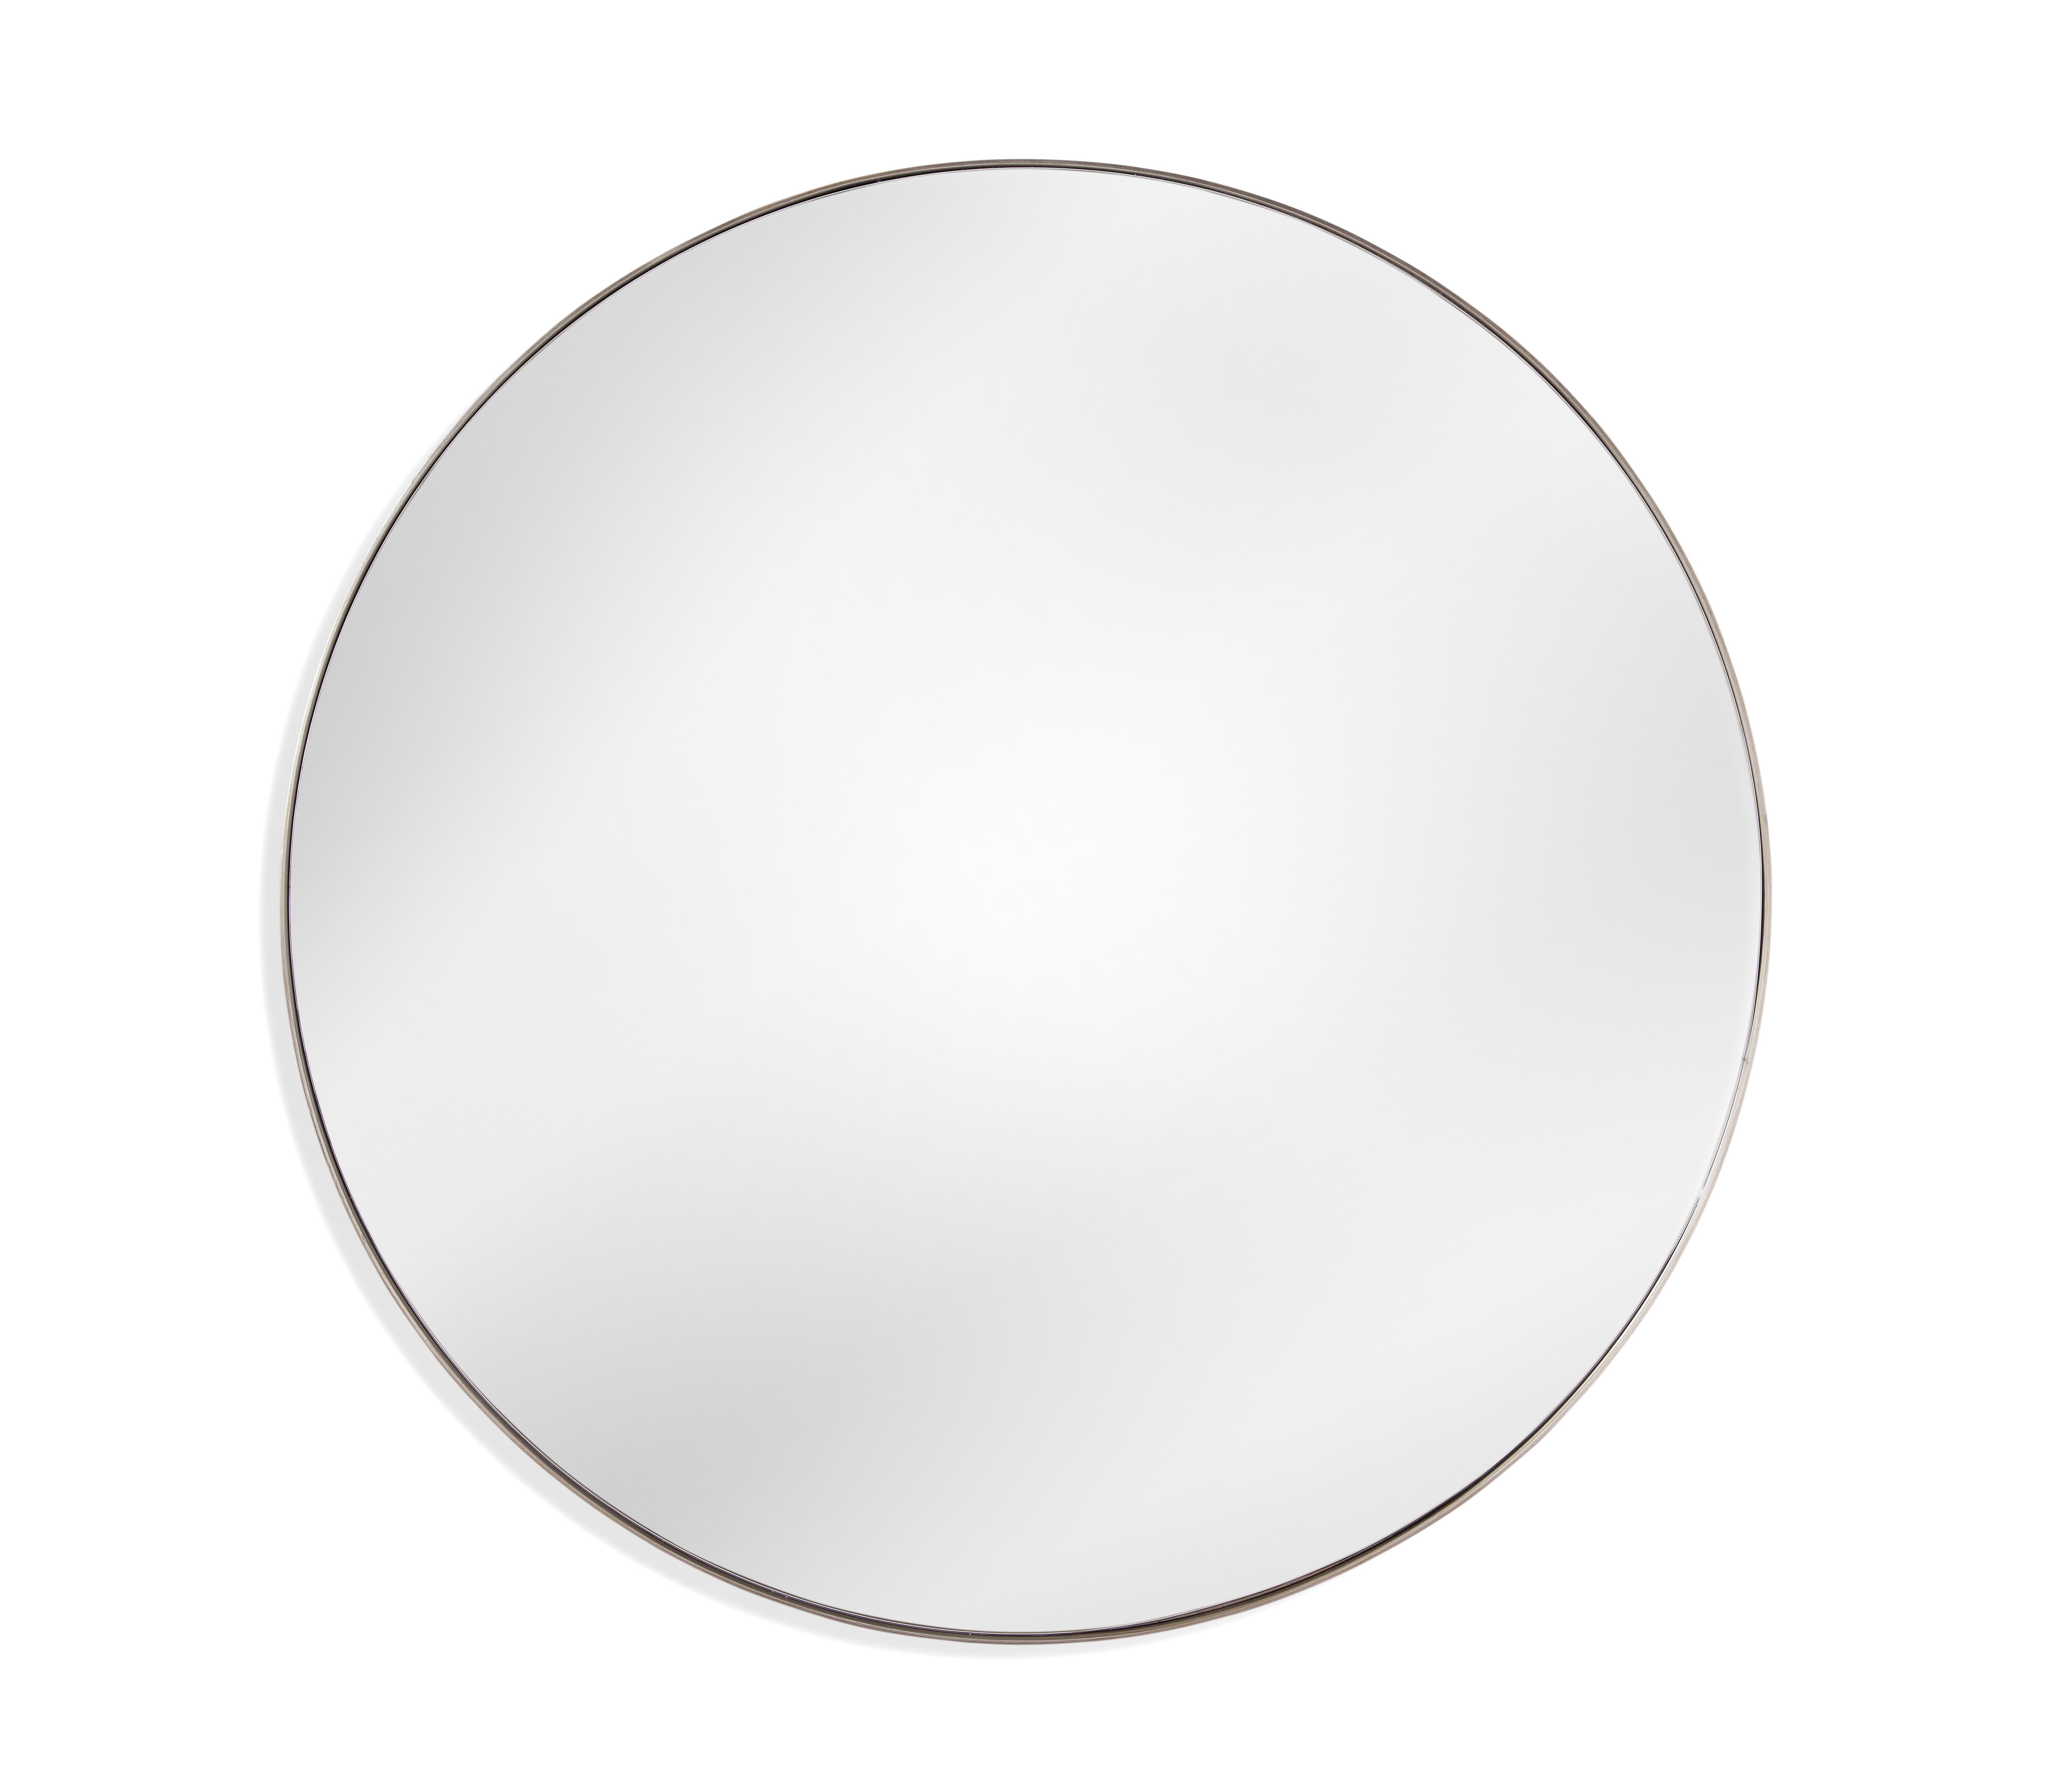 Large Oversized Round Mirrors Free Shipping Over 35 Wayfair